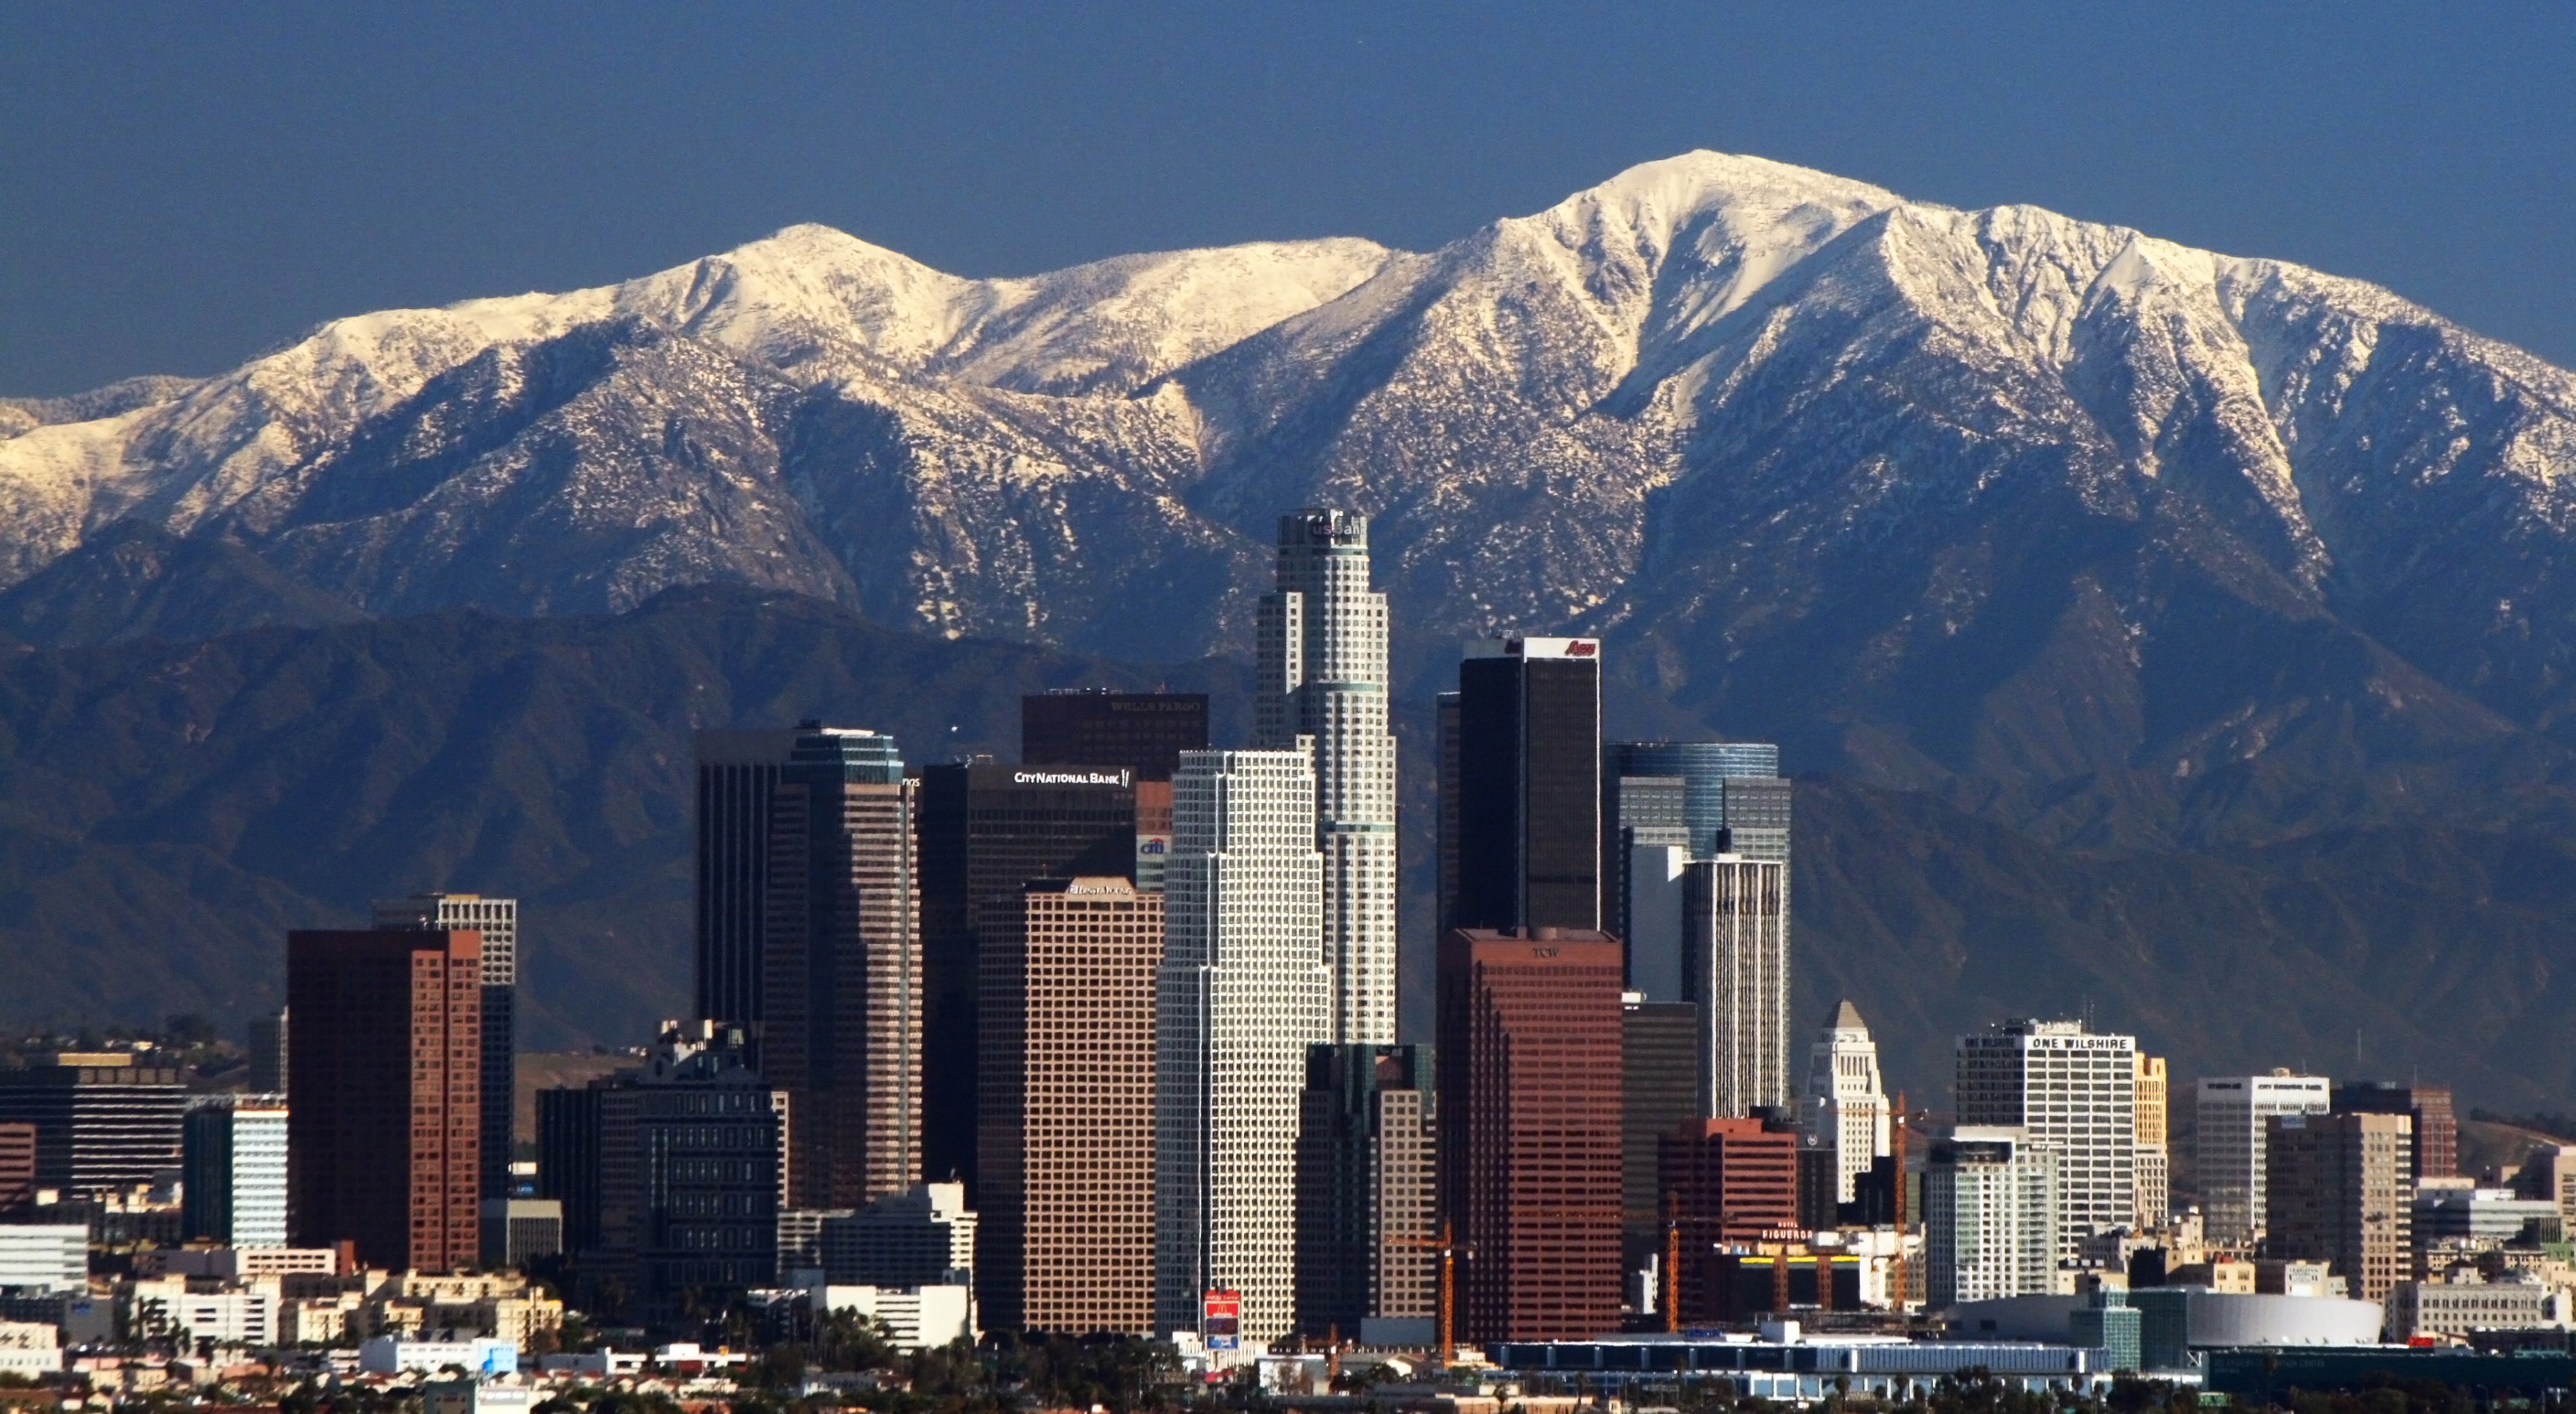 The Los Angeles skyline and San Gabriel mountains. <i>By Nserrano (Own work), via Wikimedia Commons</i>